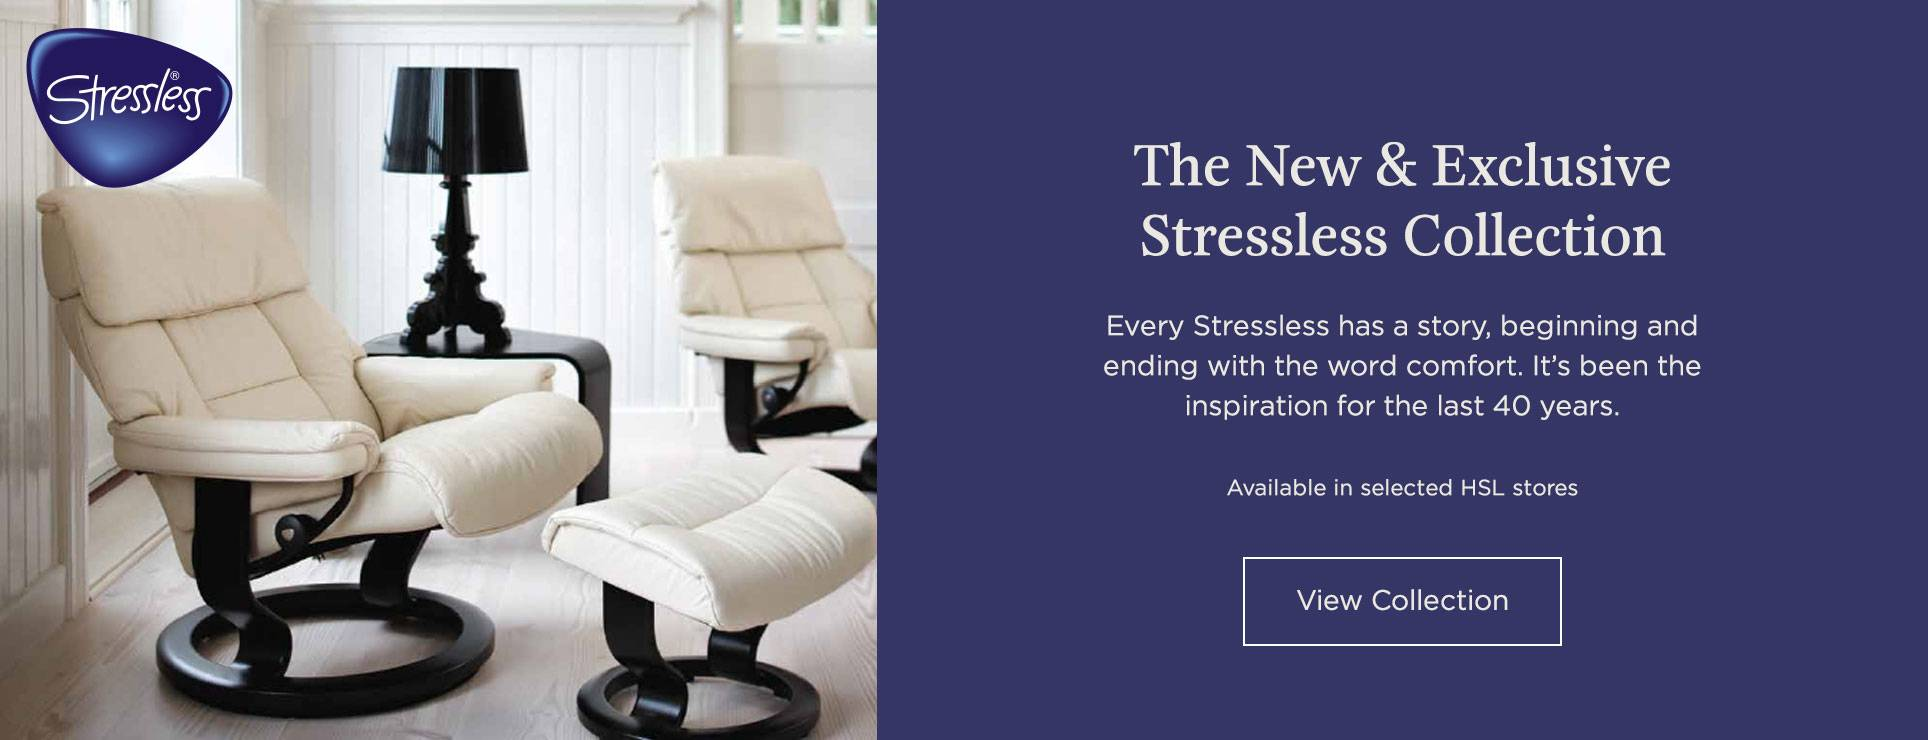 The New & Exclusive Stressless Collection